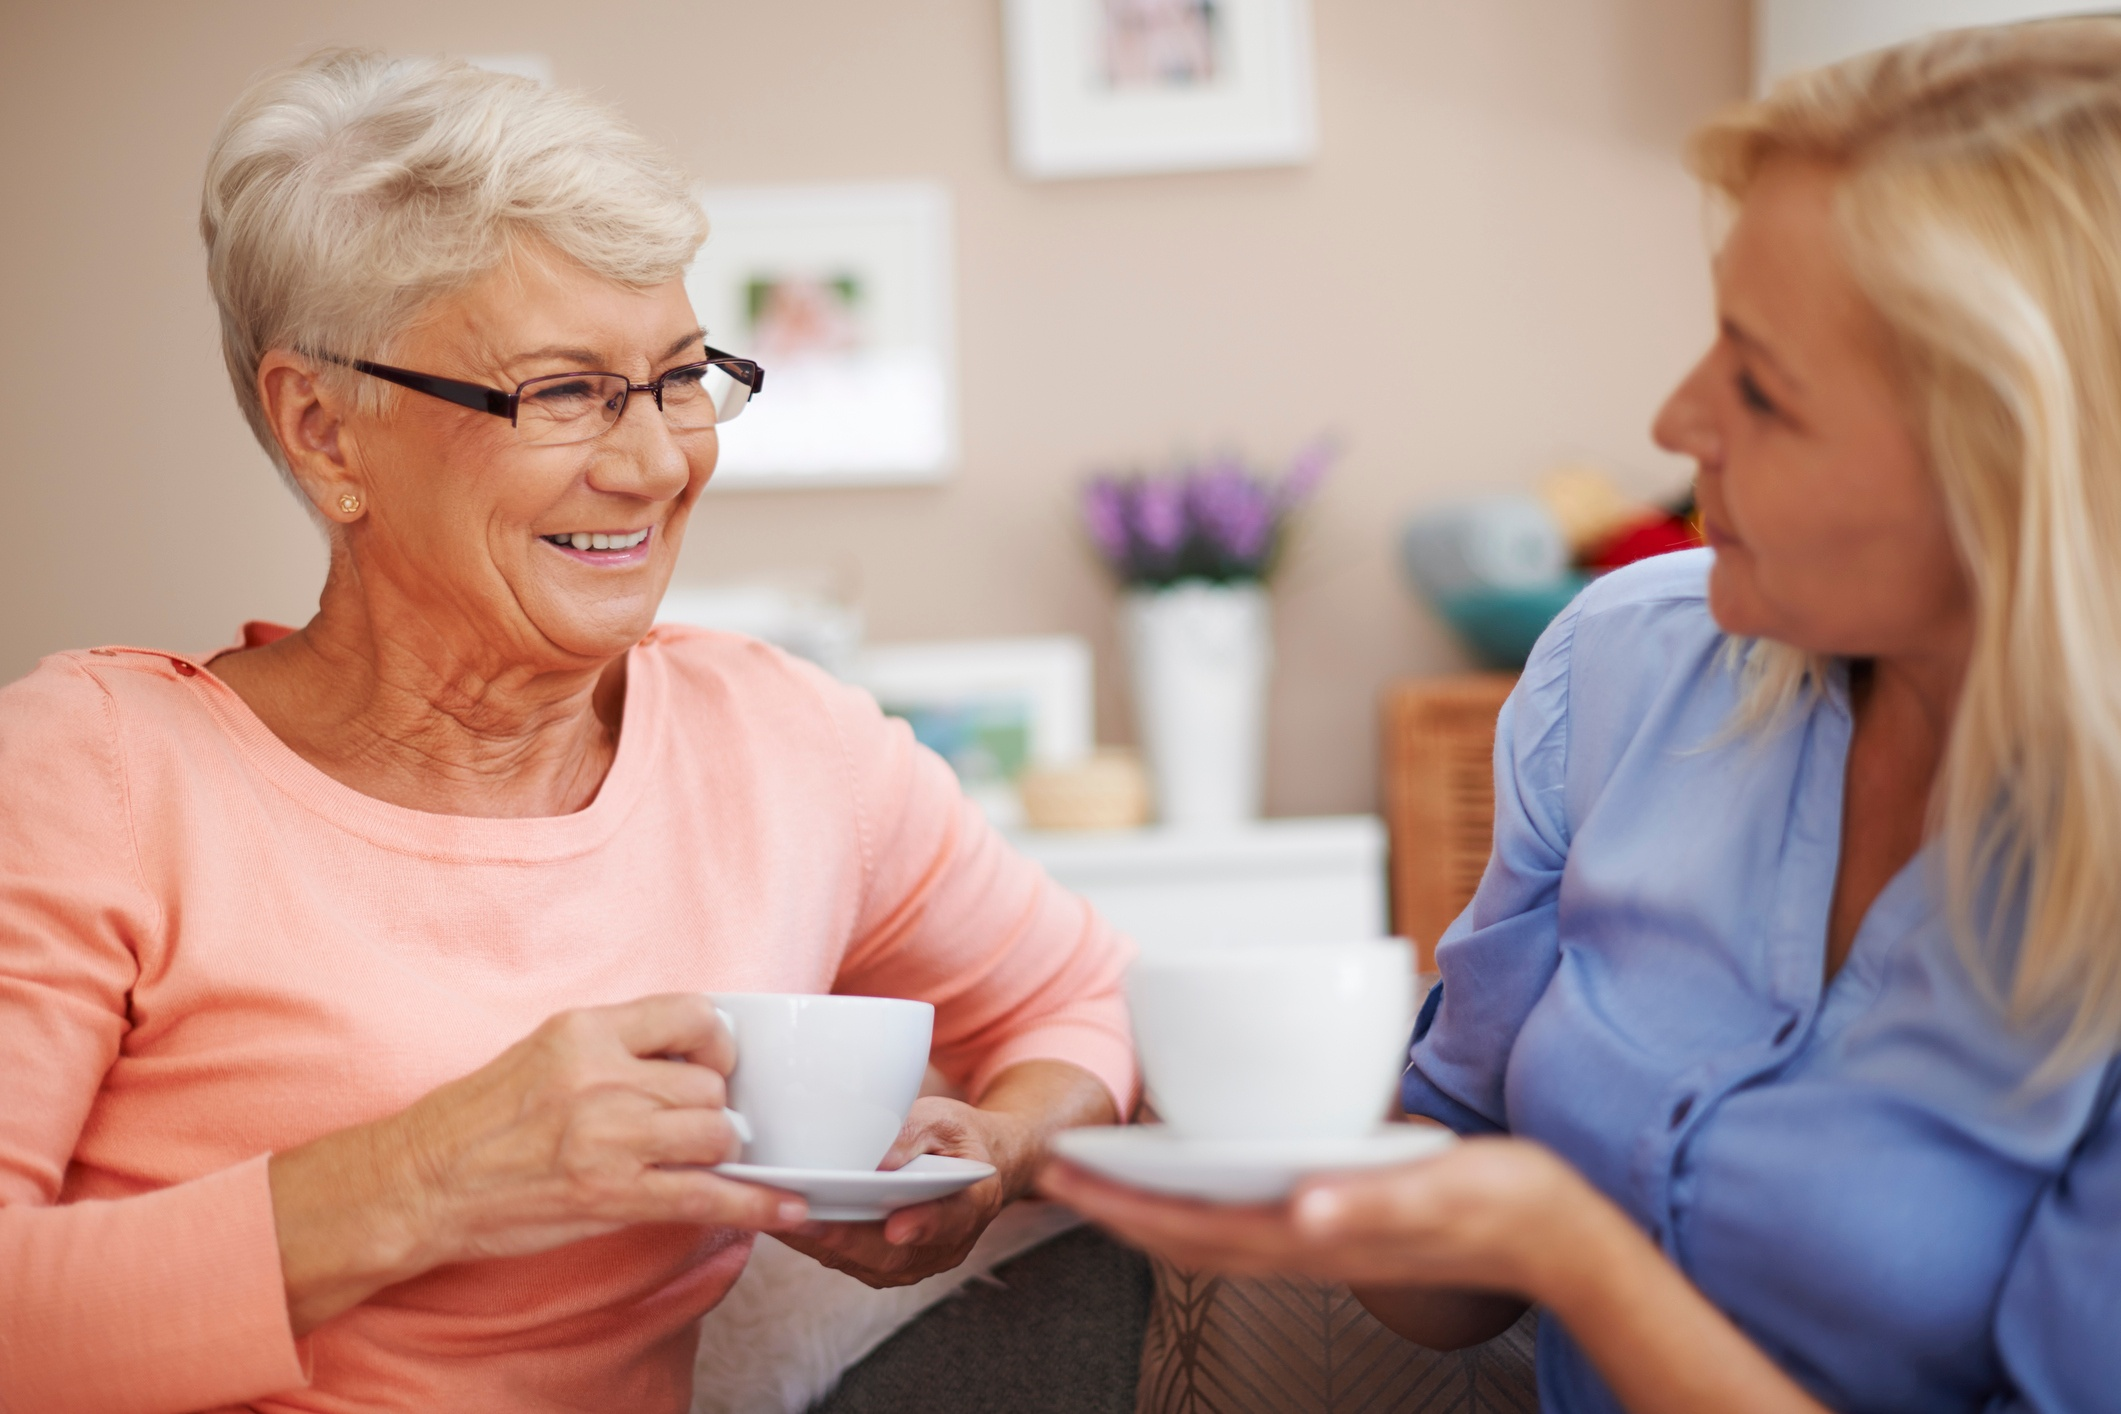 Dementia Caregiving: I told you that yesterday! Remember?